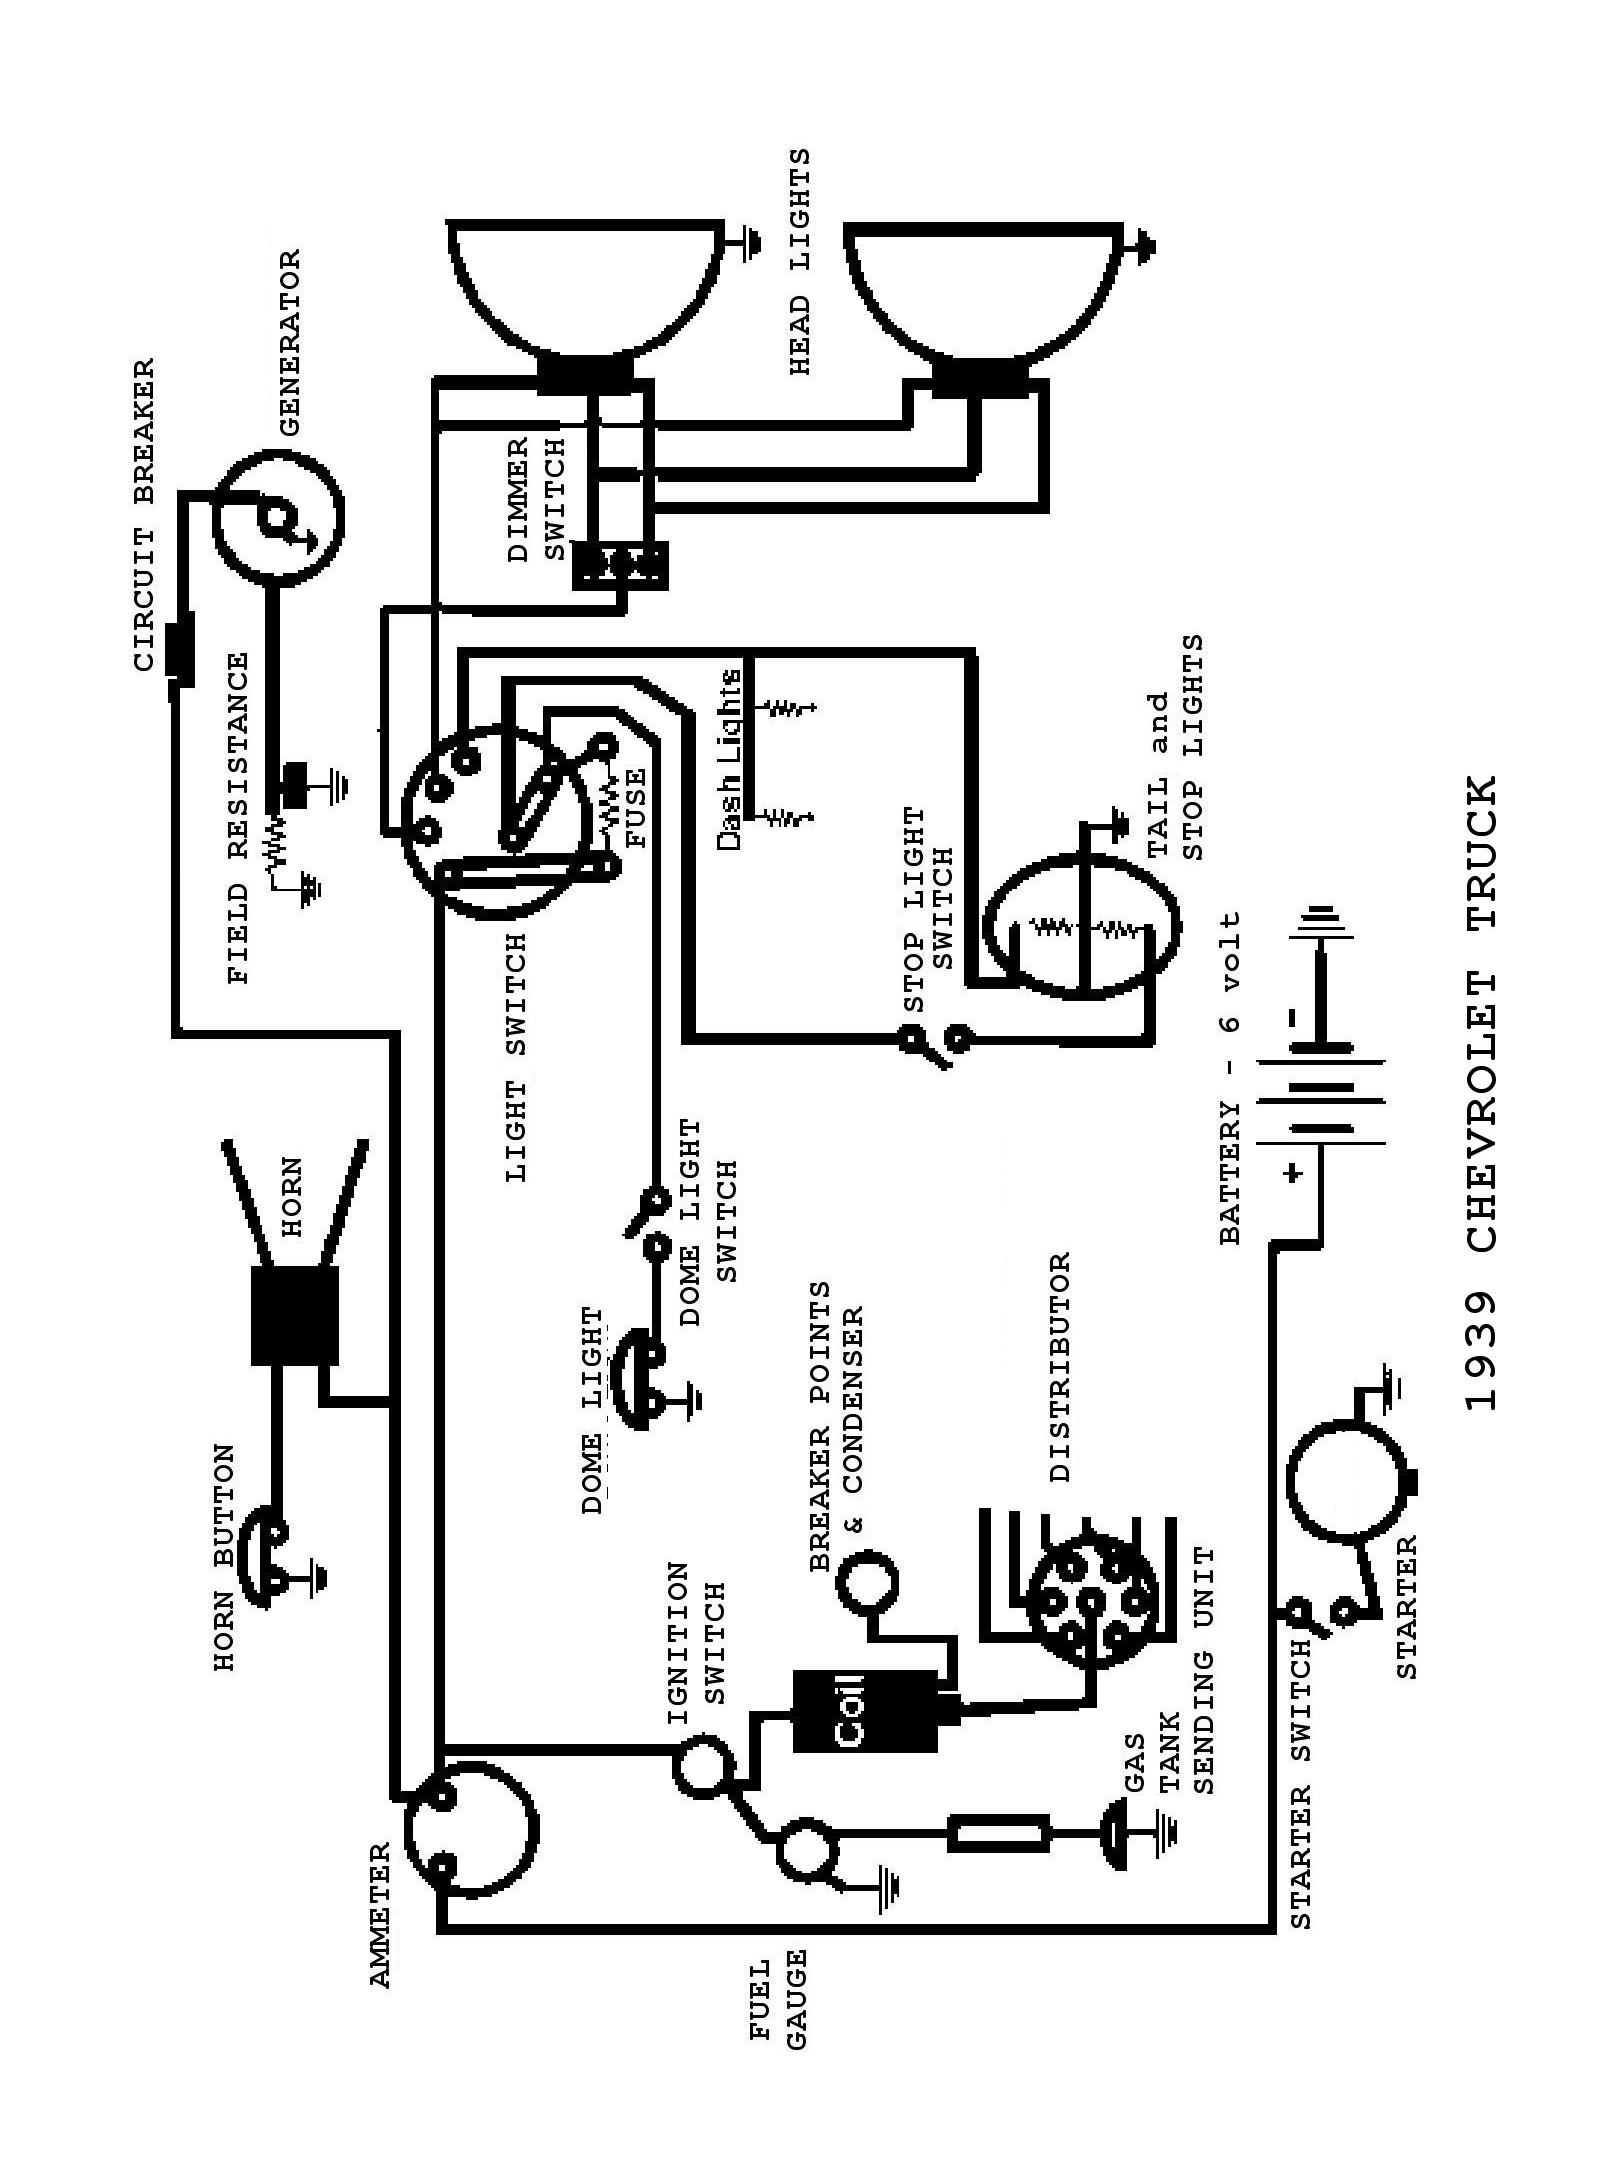 39truck ihc truck wiring diagrams mazda truck wiring diagrams \u2022 free  at n-0.co